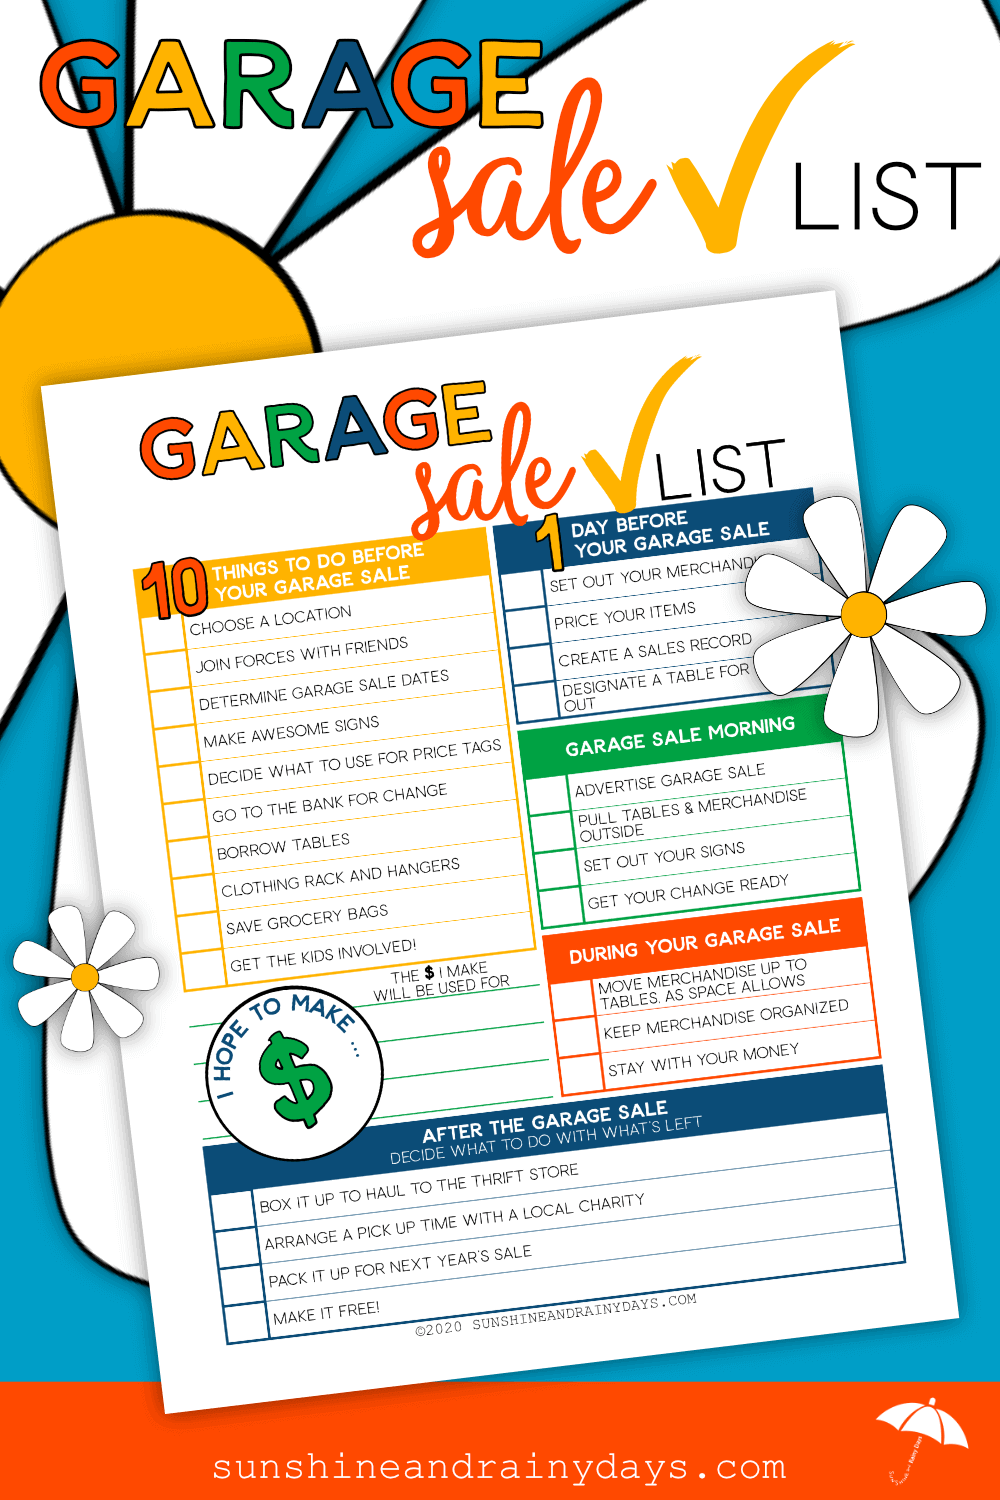 Printable Garage Sale Checklist